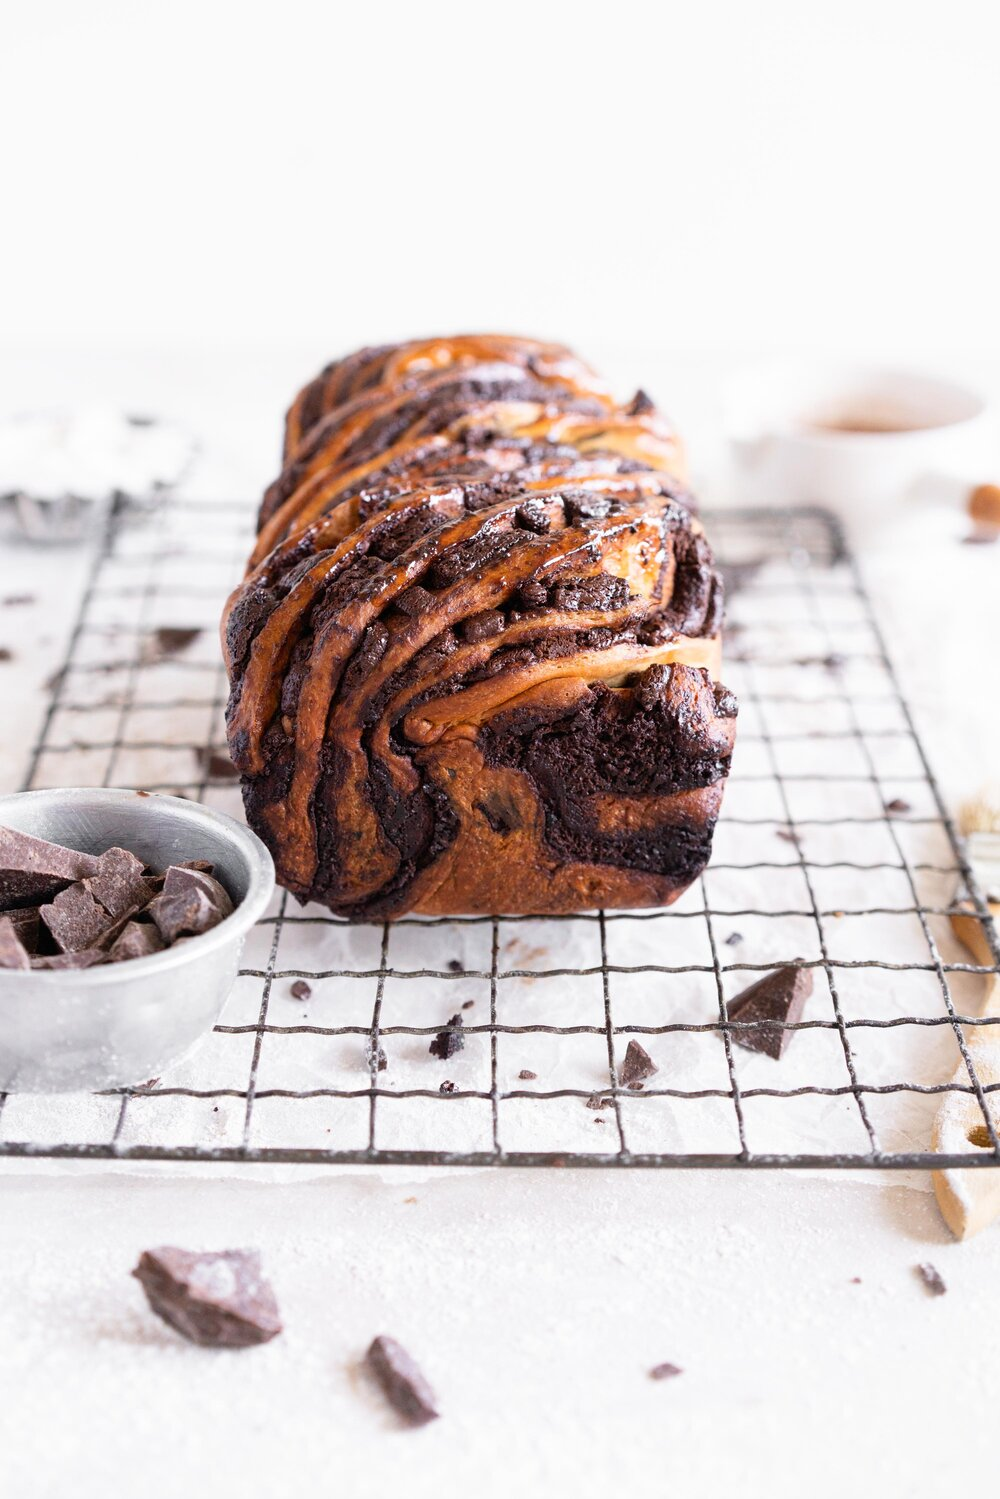 A super easy, rich chocolate and espresso babka made with a rye brioche. The brioche dough is super soft and fluffy, made with rye flour for a toasty finish, and is filled with an espresso chocolate filling and finished with a simple syrup to give it shine and lock in moisture